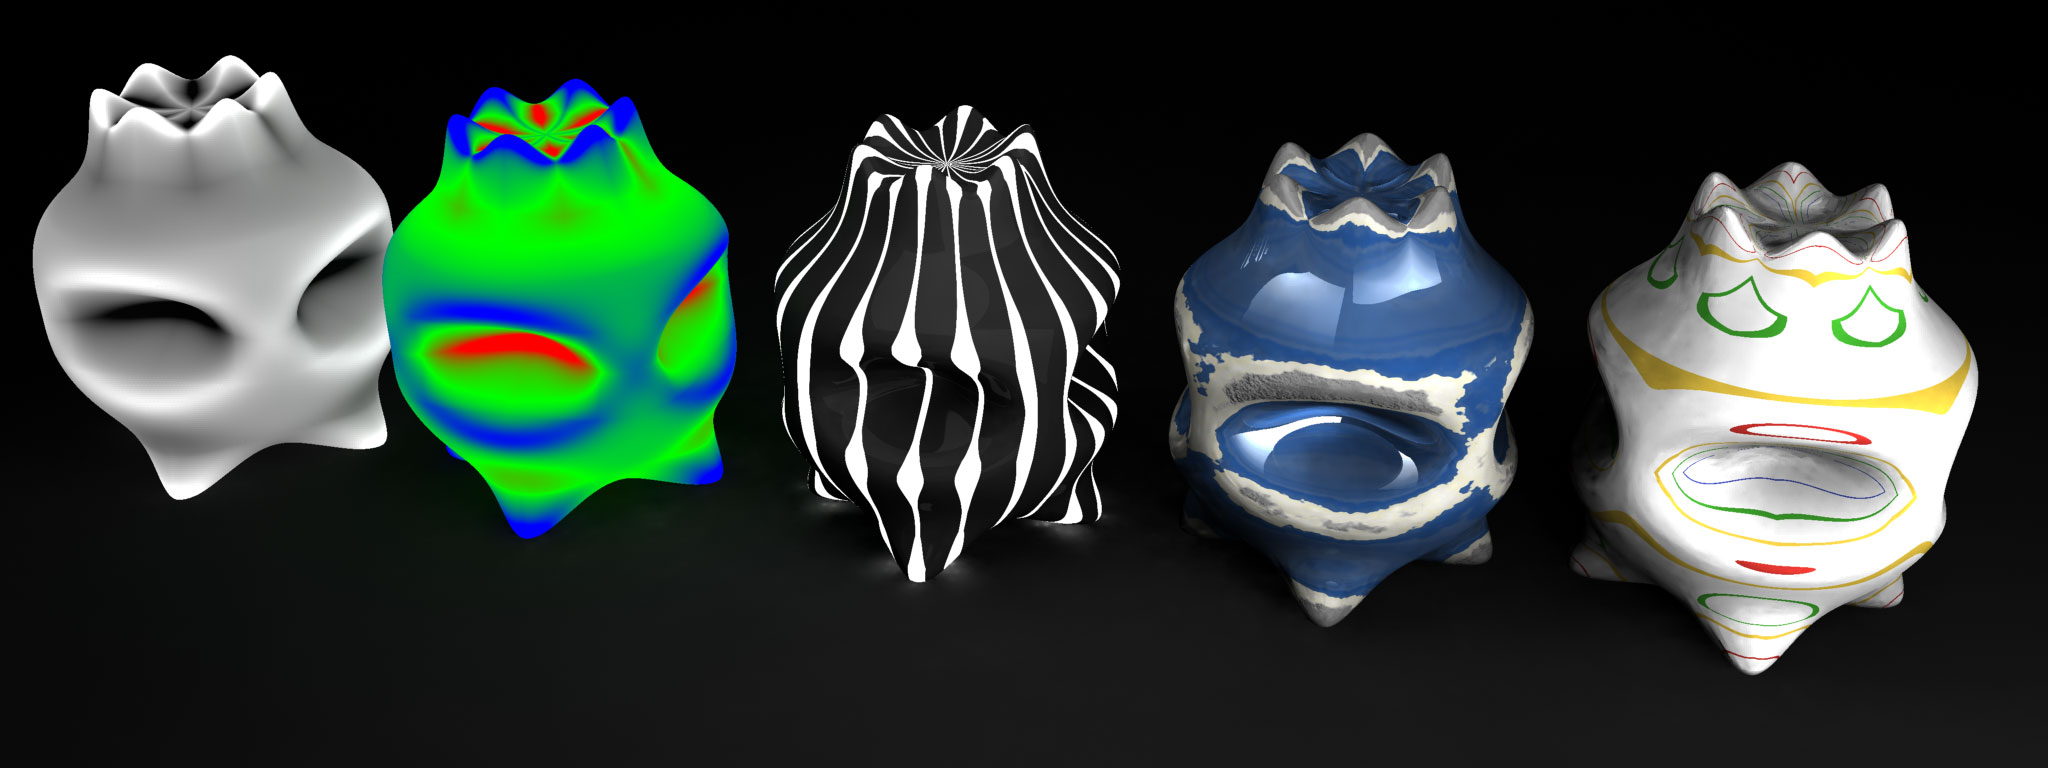 tomcowland com - mentral ray shaders for OS X